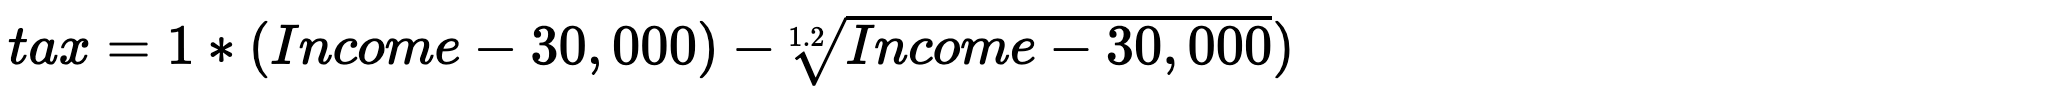 tax formula with subs